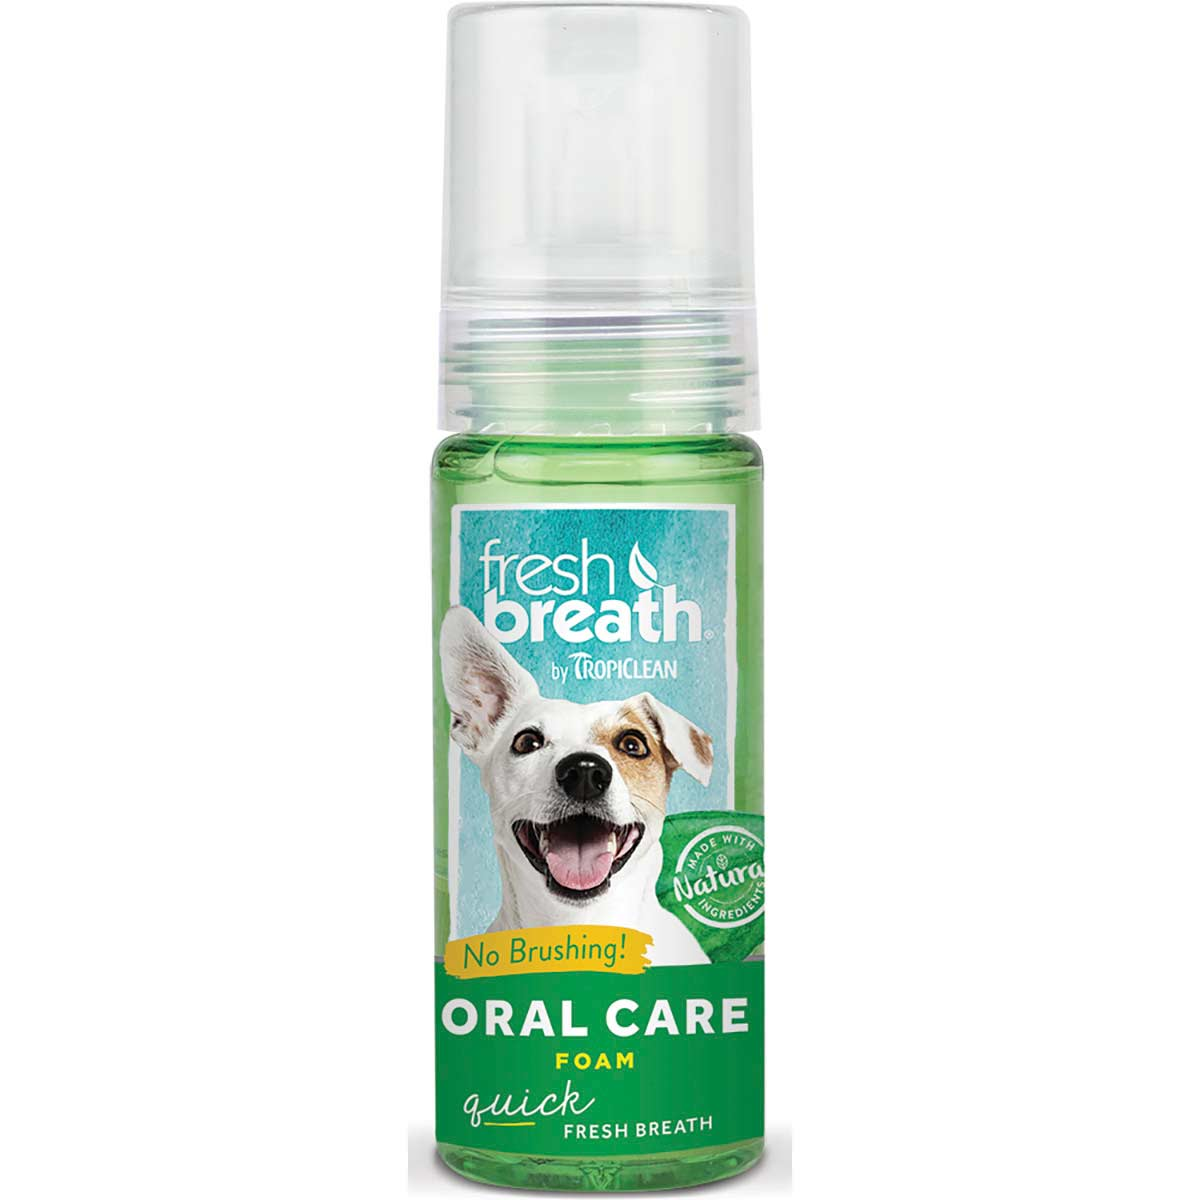 Tropiclean Fresh Breath Oral Care Fresh Mint Foam 4.5 oz at Ryan's Pet Supplies